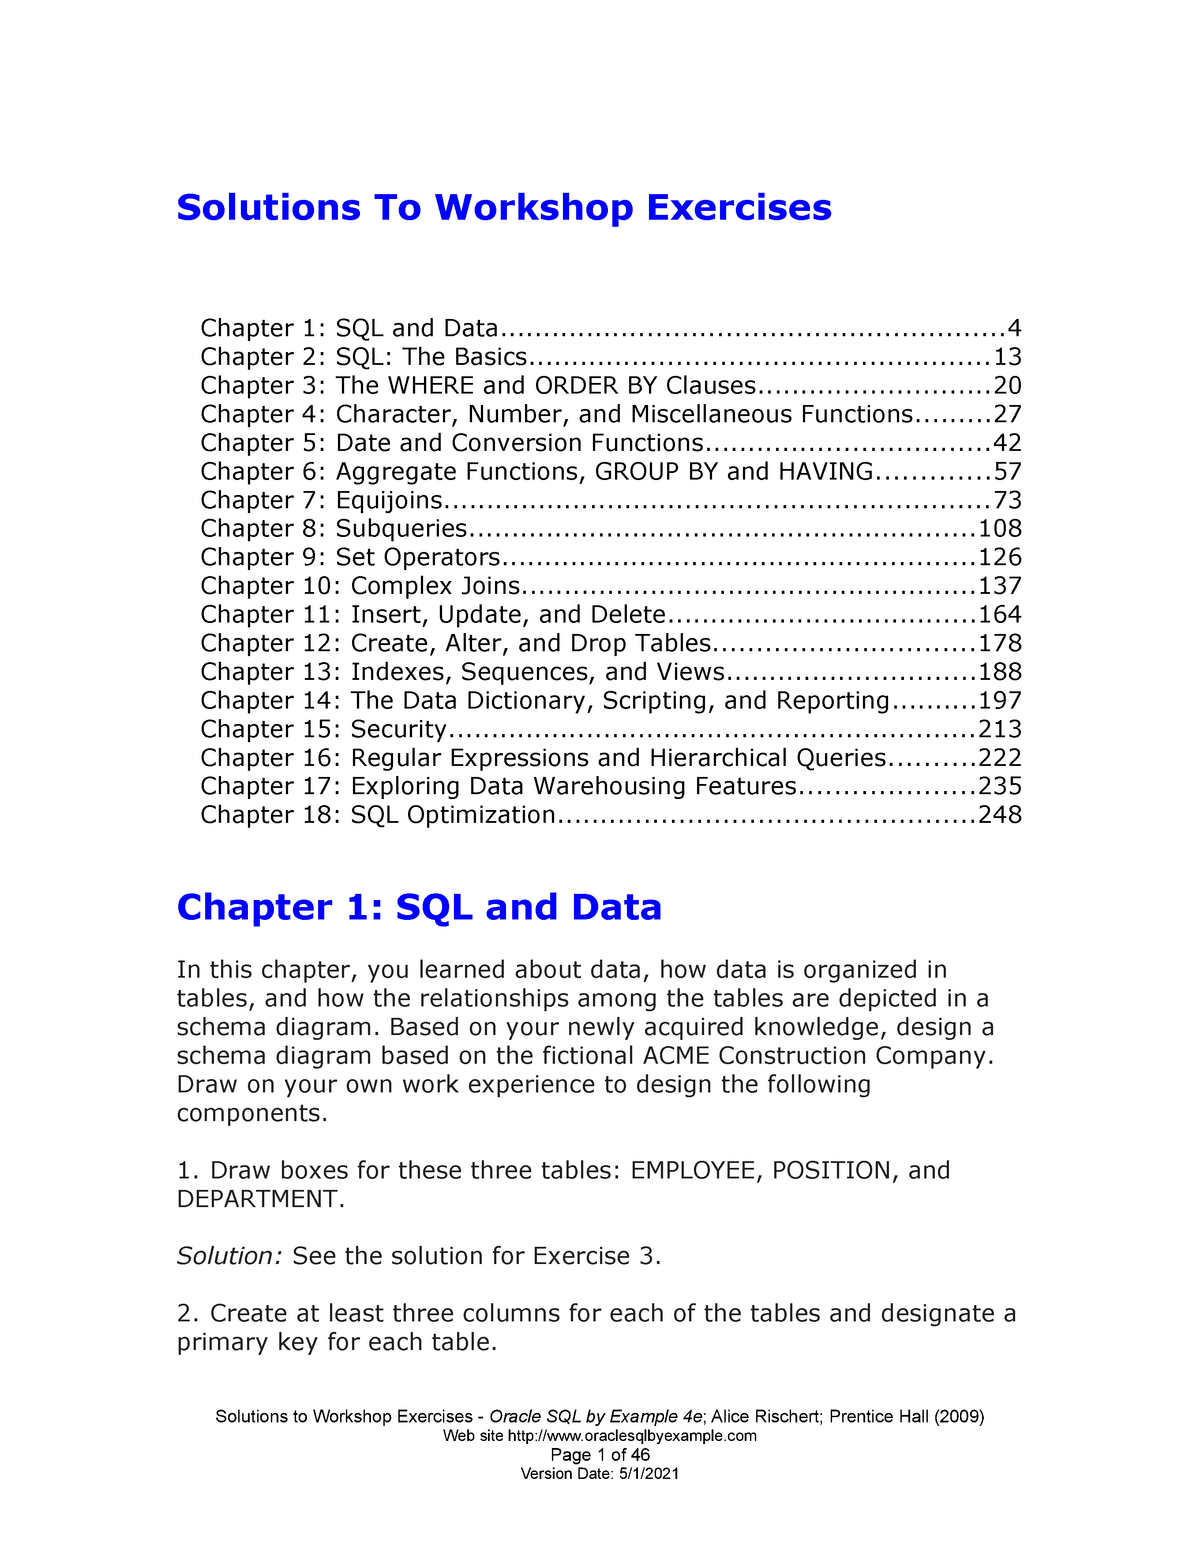 Workshop solutions - Lecture notes 5 - CSIS 3475: Data